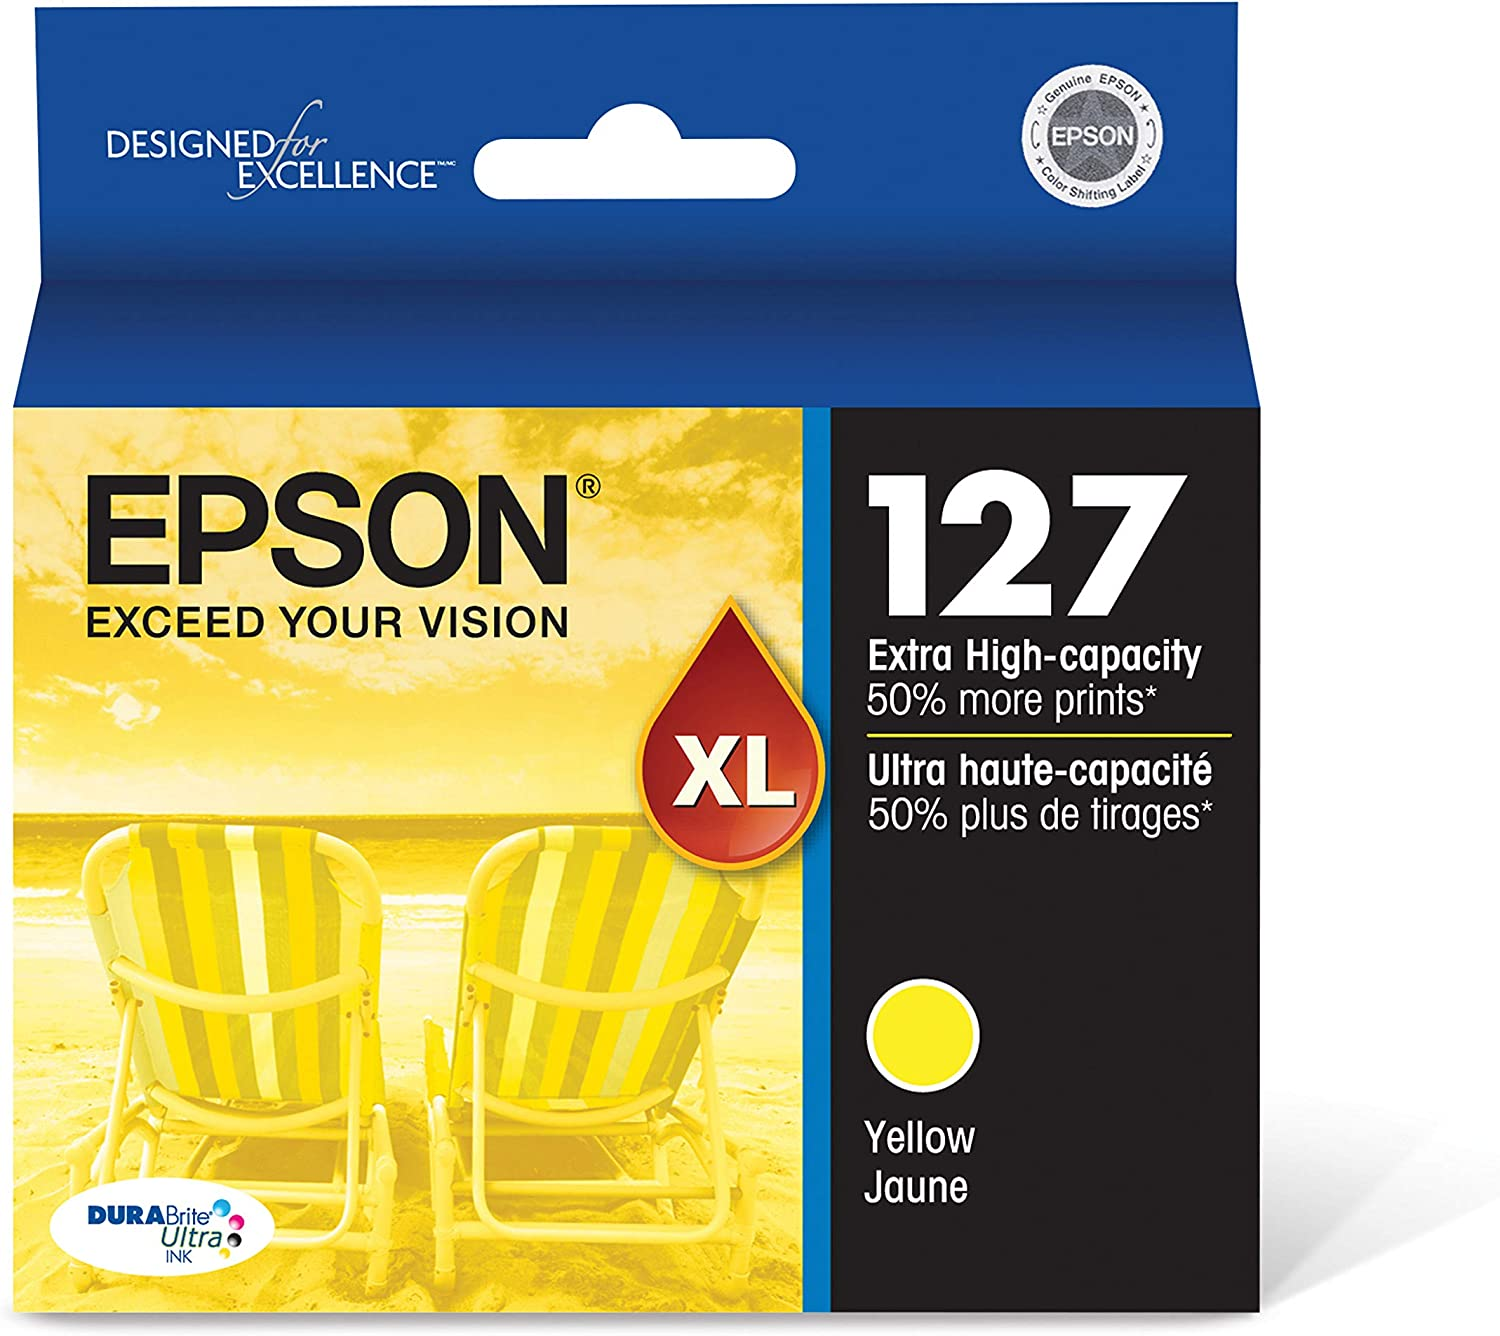 Epson DURABrite Ultra 127 Extra High-capacity Inkjet Cartridge Yellow T127420